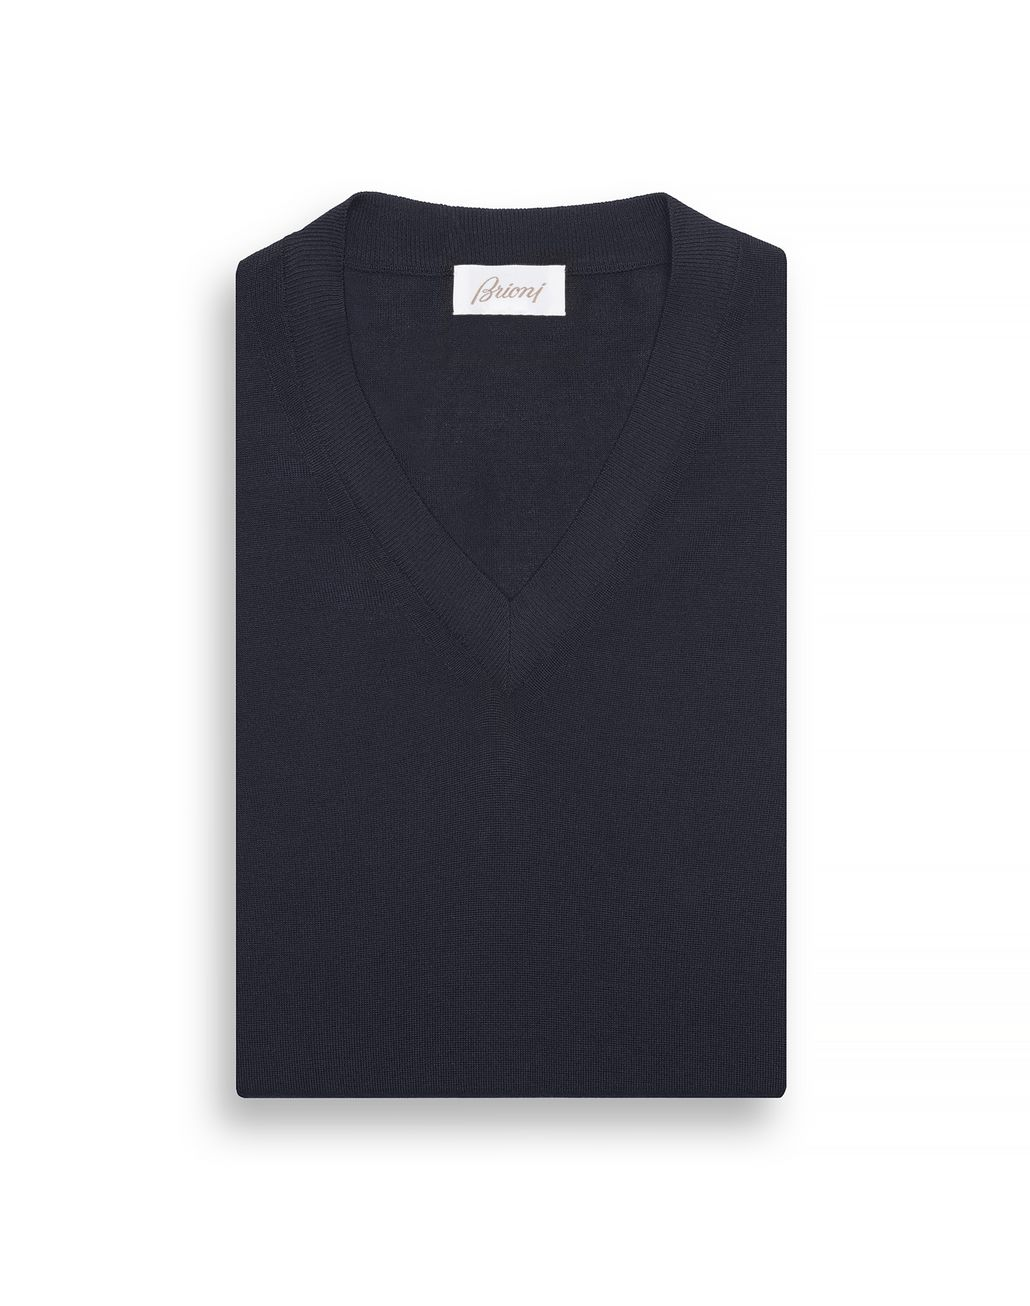 BRIONI 'Essential' Navy Blue V-Neck Sweater Knitwear [*** pickupInStoreShippingNotGuaranteed_info ***] e